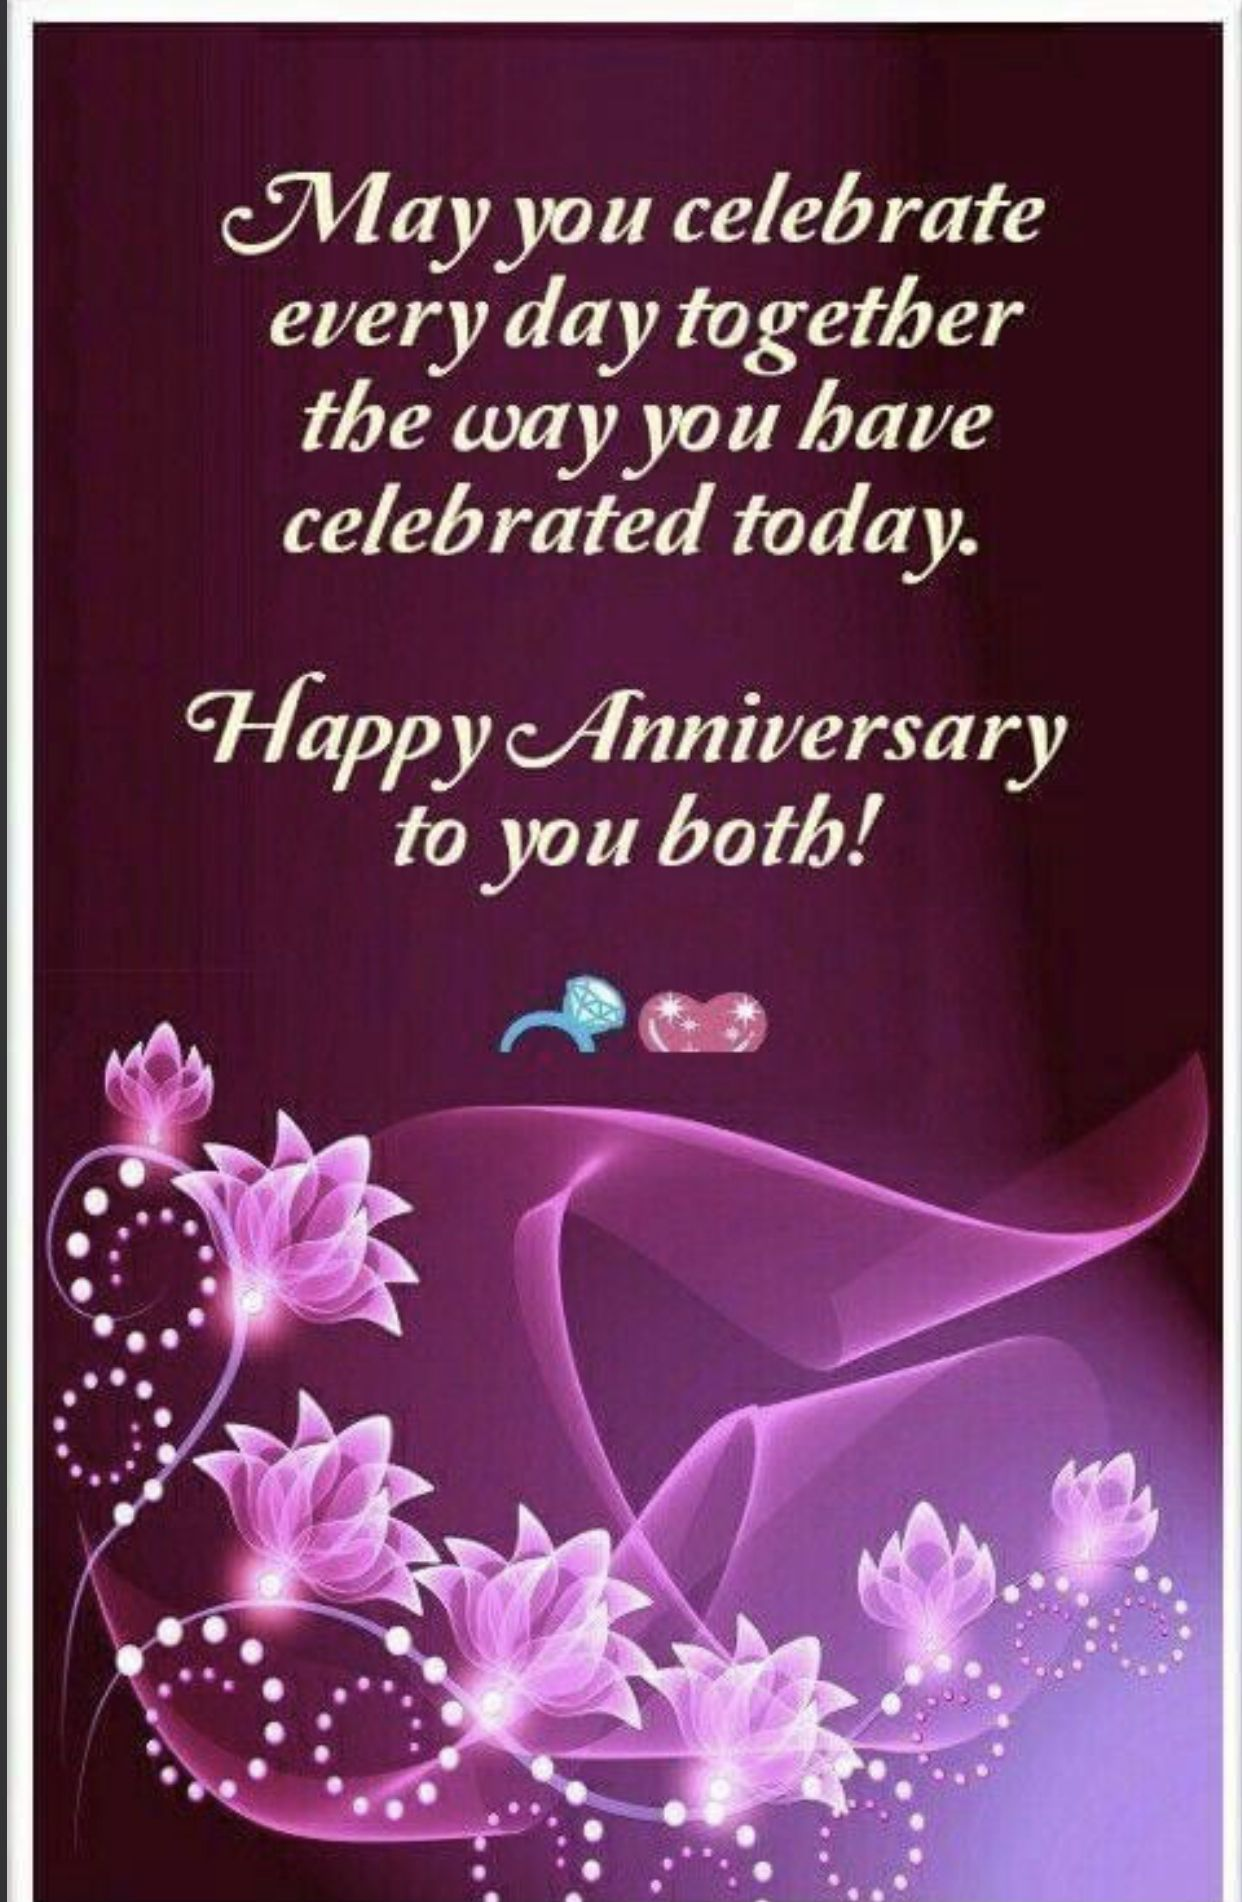 Pin By Amy Niswander On Happy Anniversary Happy Wedding Anniversary Wishes Happy Anniversary Wedding Wedding Anniversary Wishes